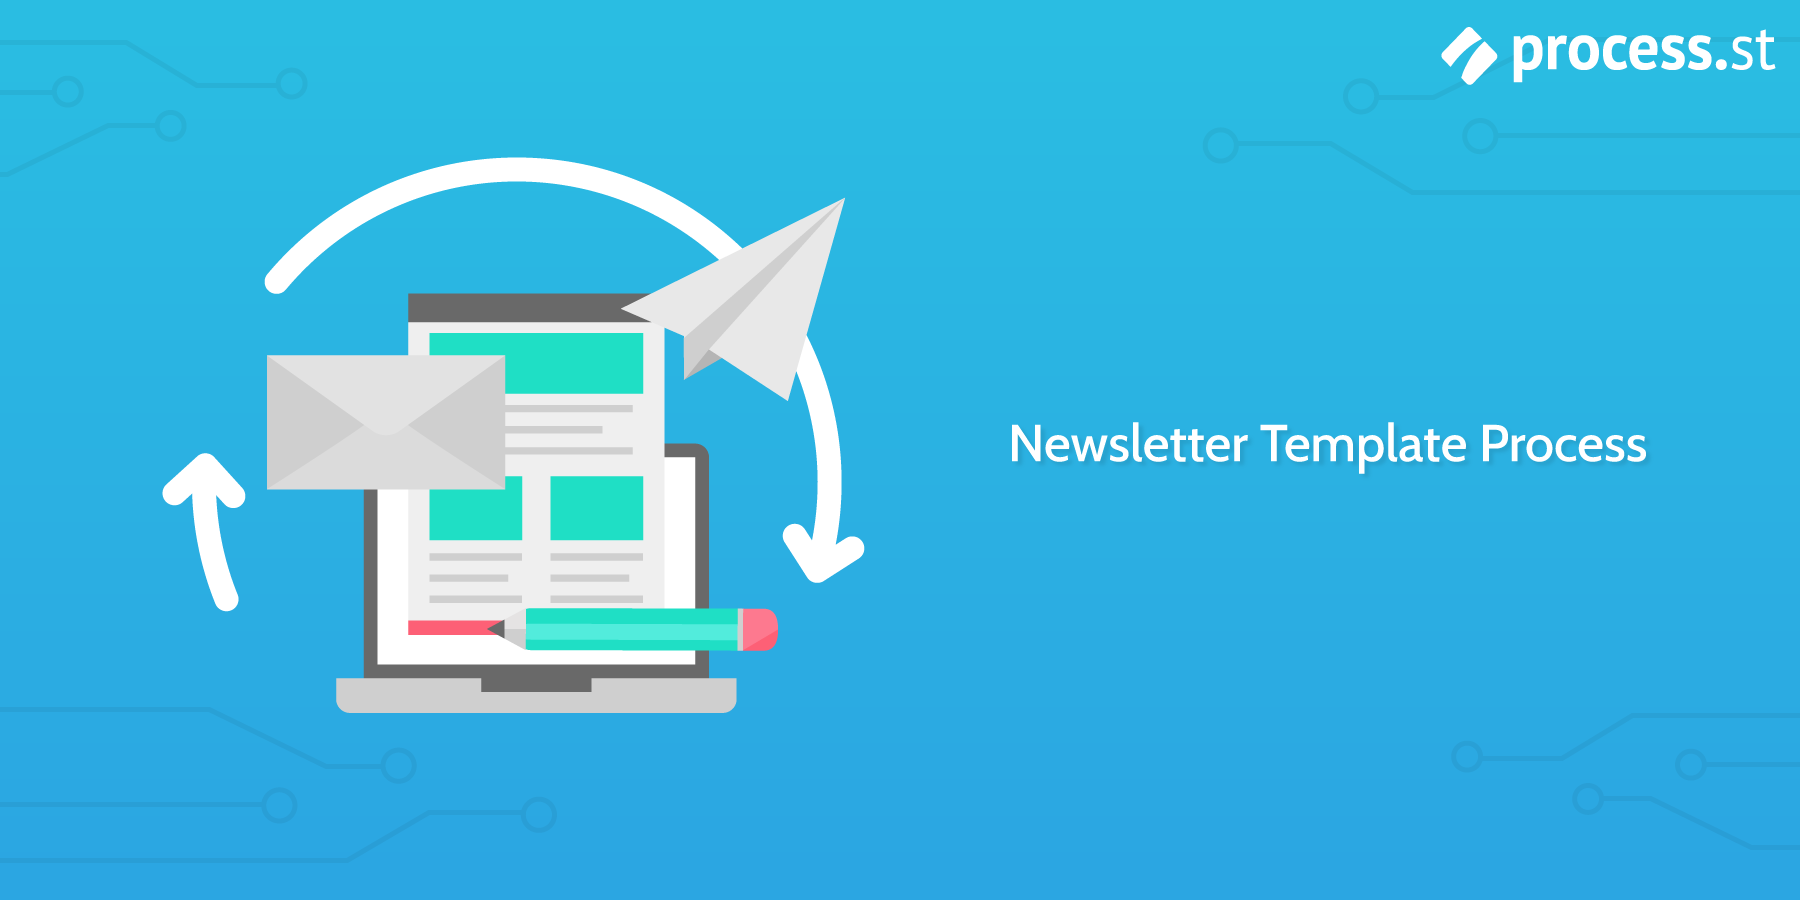 Newsletter templates: newsletter template process